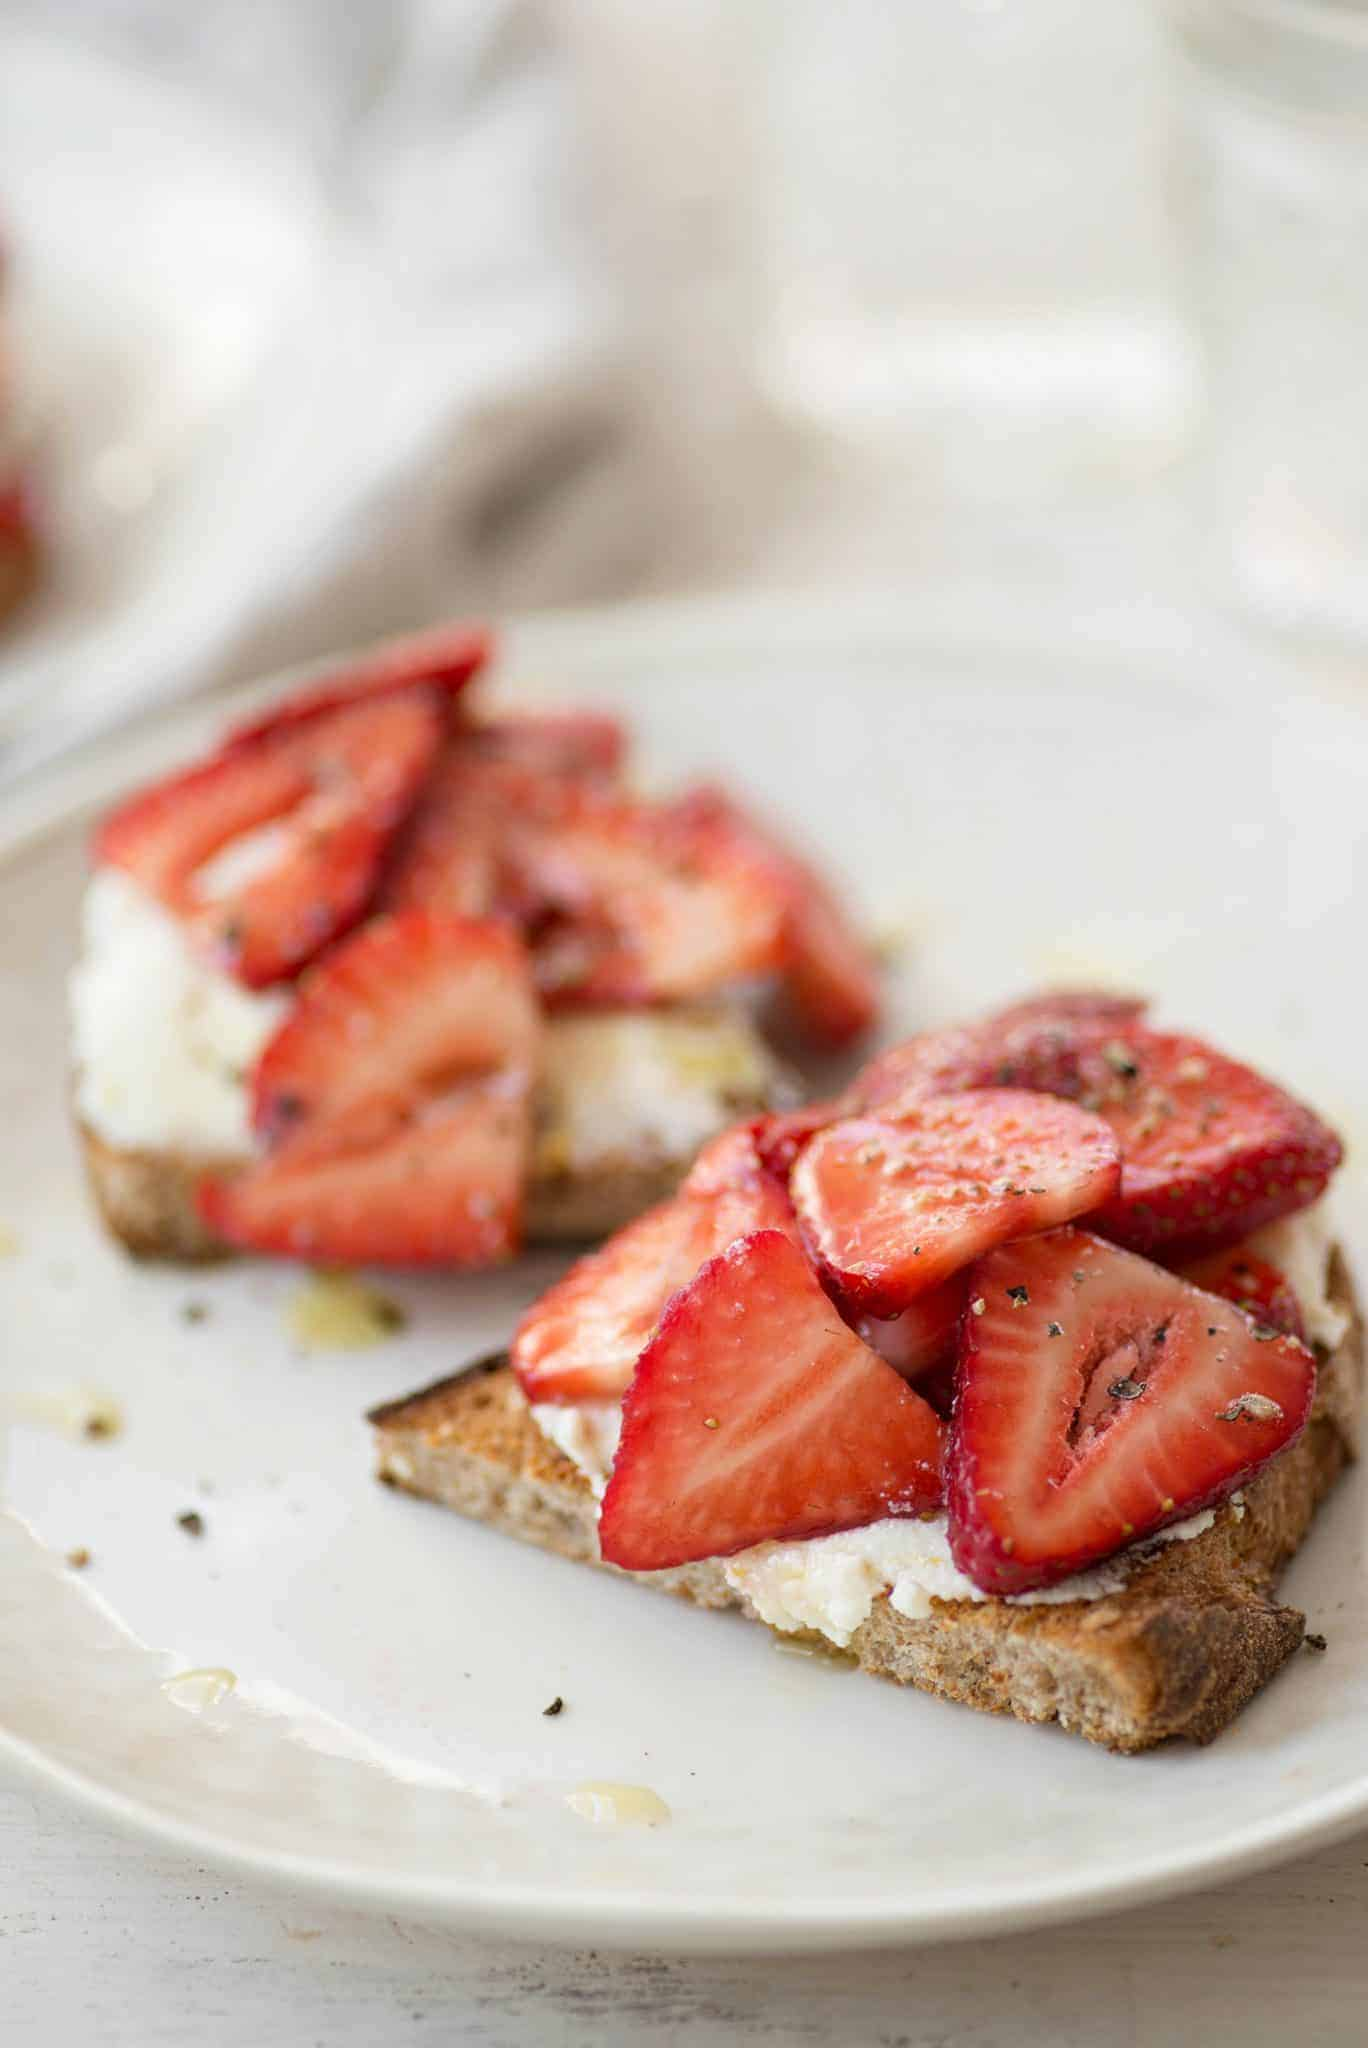 Balsamic Strawberry Ricotta Toast. The perfect breakfast for this time of year. Balsamic soaked berries spooned onto thick toast with orange ricotta. | delishknowledge.com